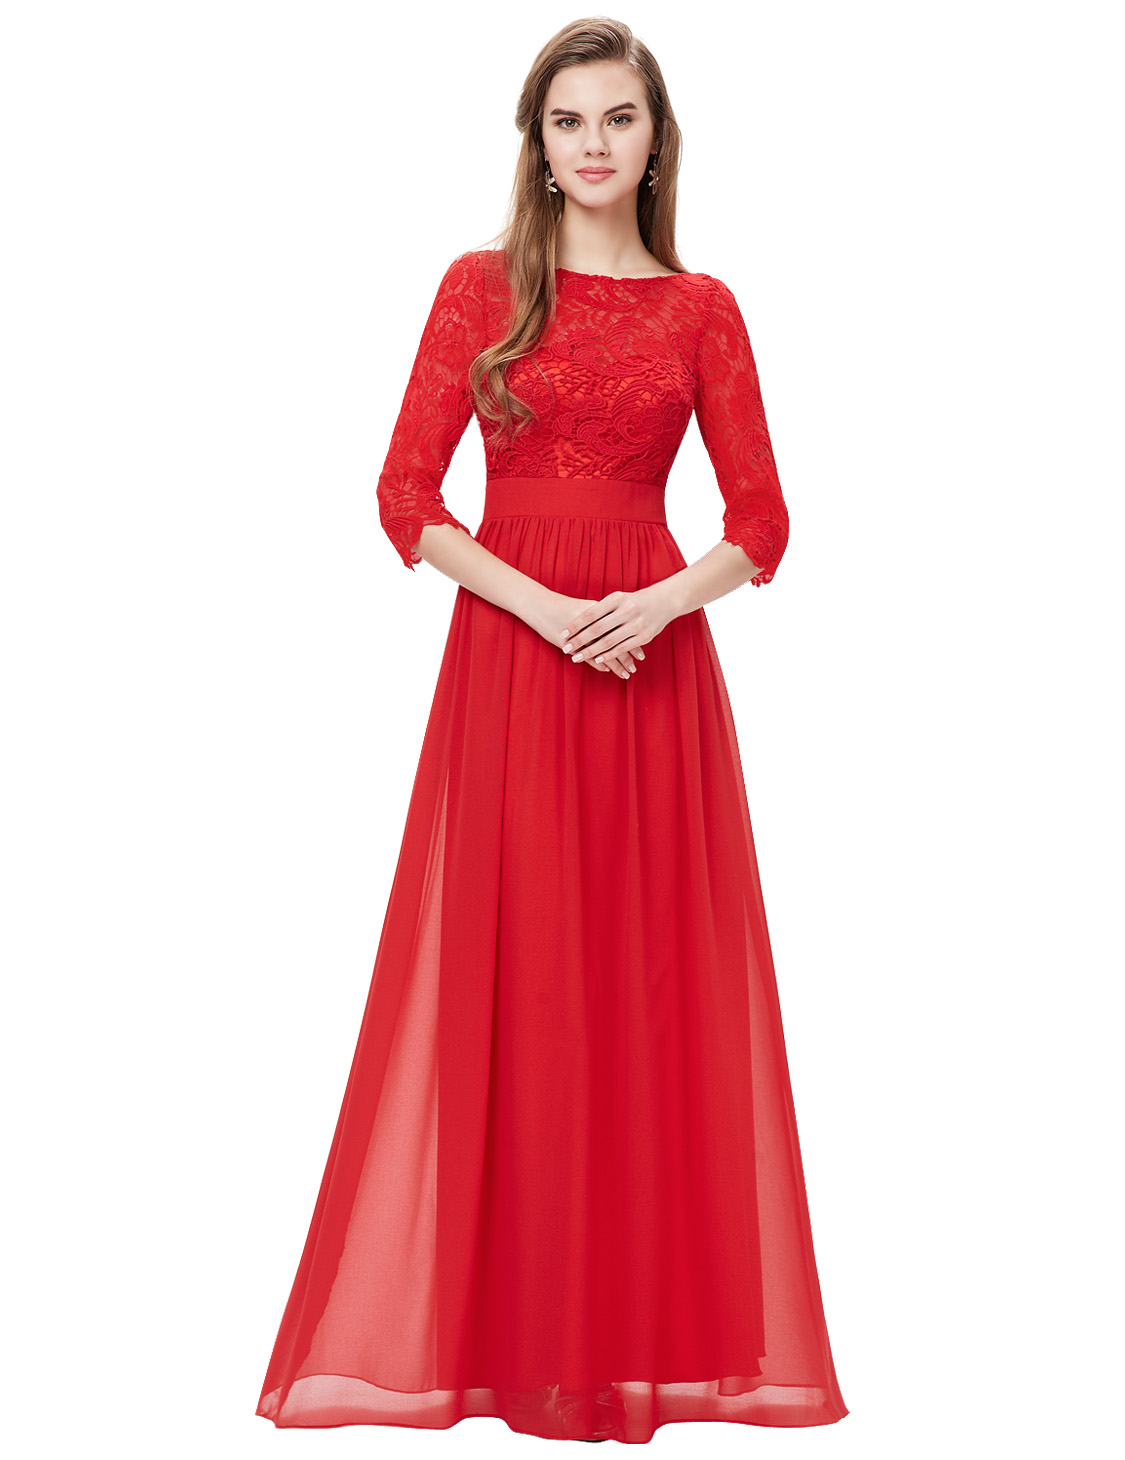 Womens 3 4 sleeves lace bridesmaid dresses evening prom for Wedding dresses for womens